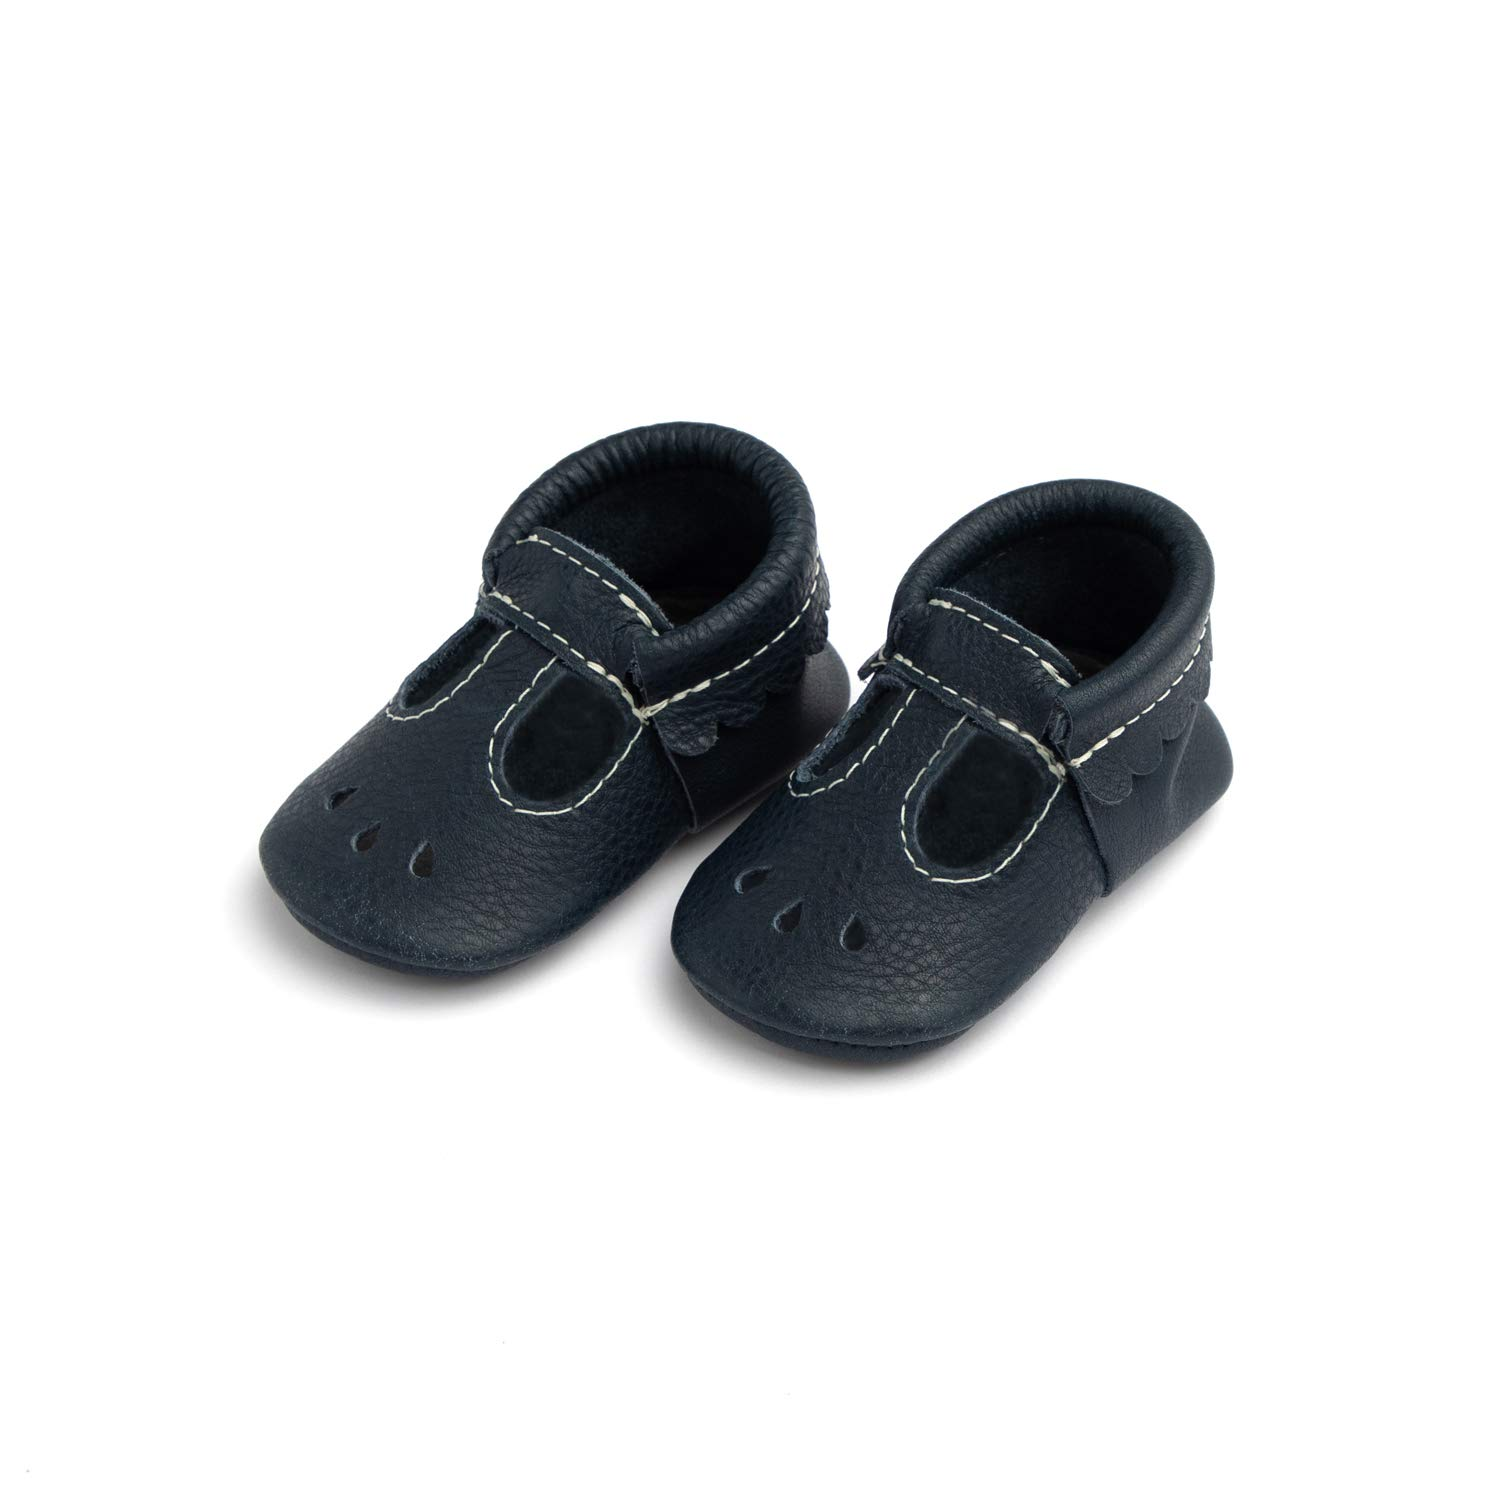 Freshly Picked - Soft Sole Leather Mary Jane Moccasins - Baby Girl Shoes - Size 1 Navy Blue by Freshly Picked